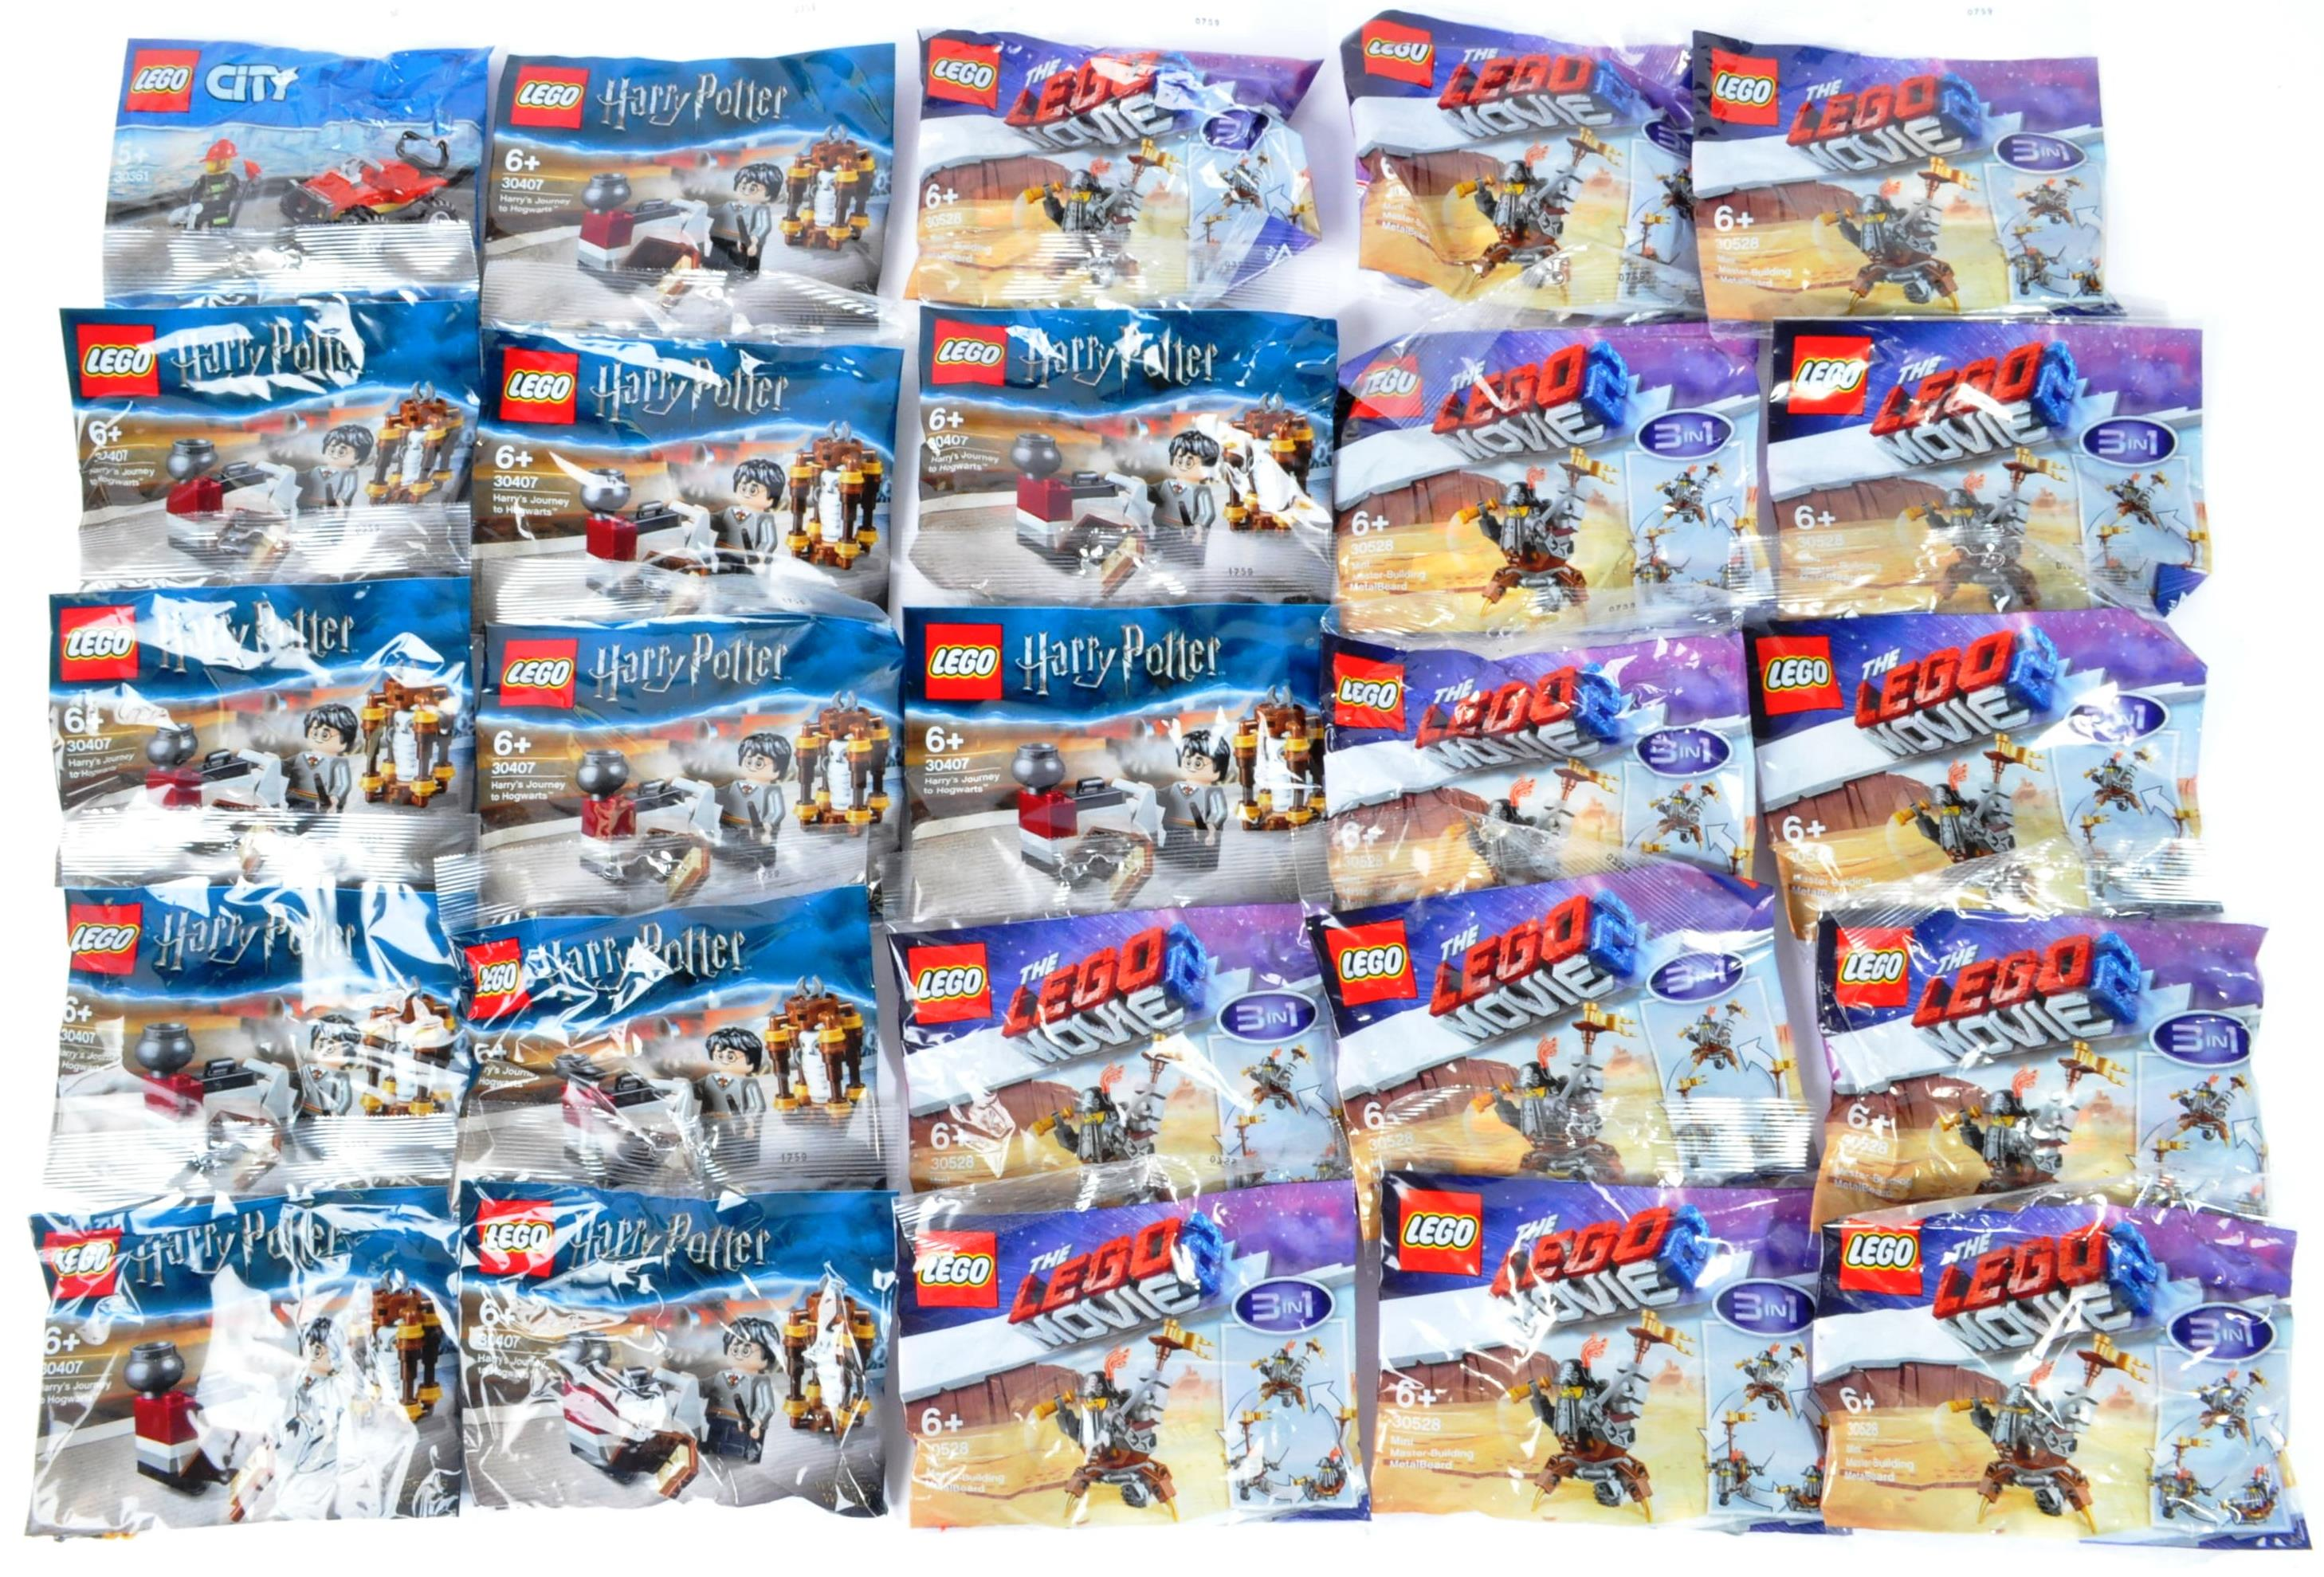 LEGO - LARGE COLLECTION OF LEGO MOVIE, CITY & HARRY POTTER SETS